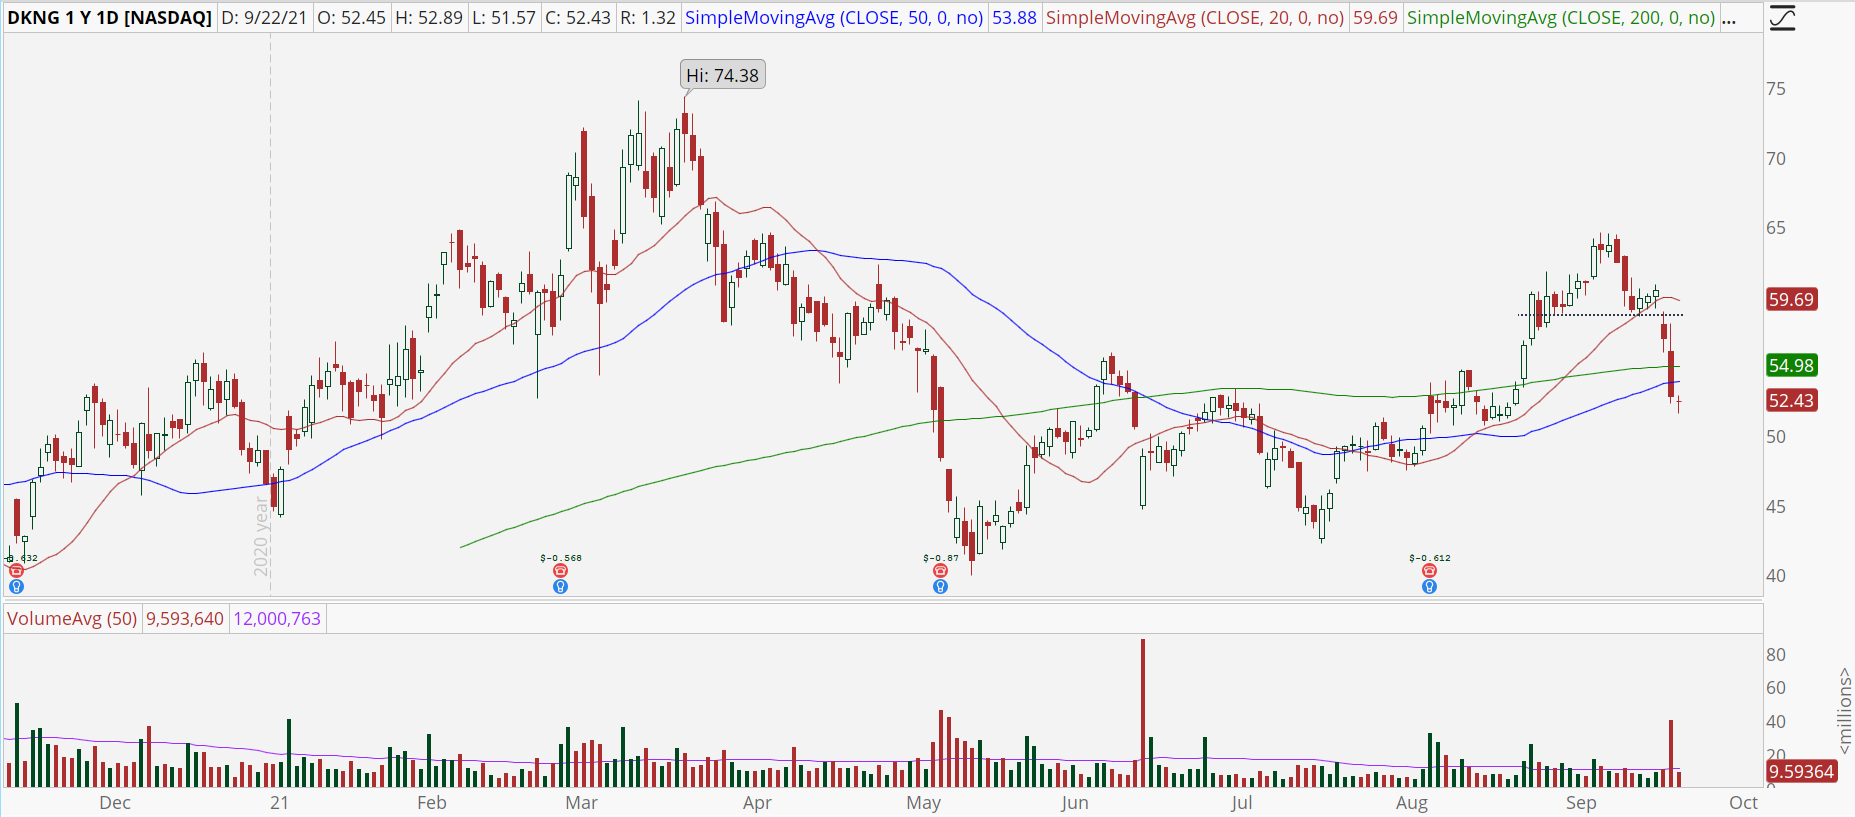 DraftKings (DKNG) stock chart with support breach